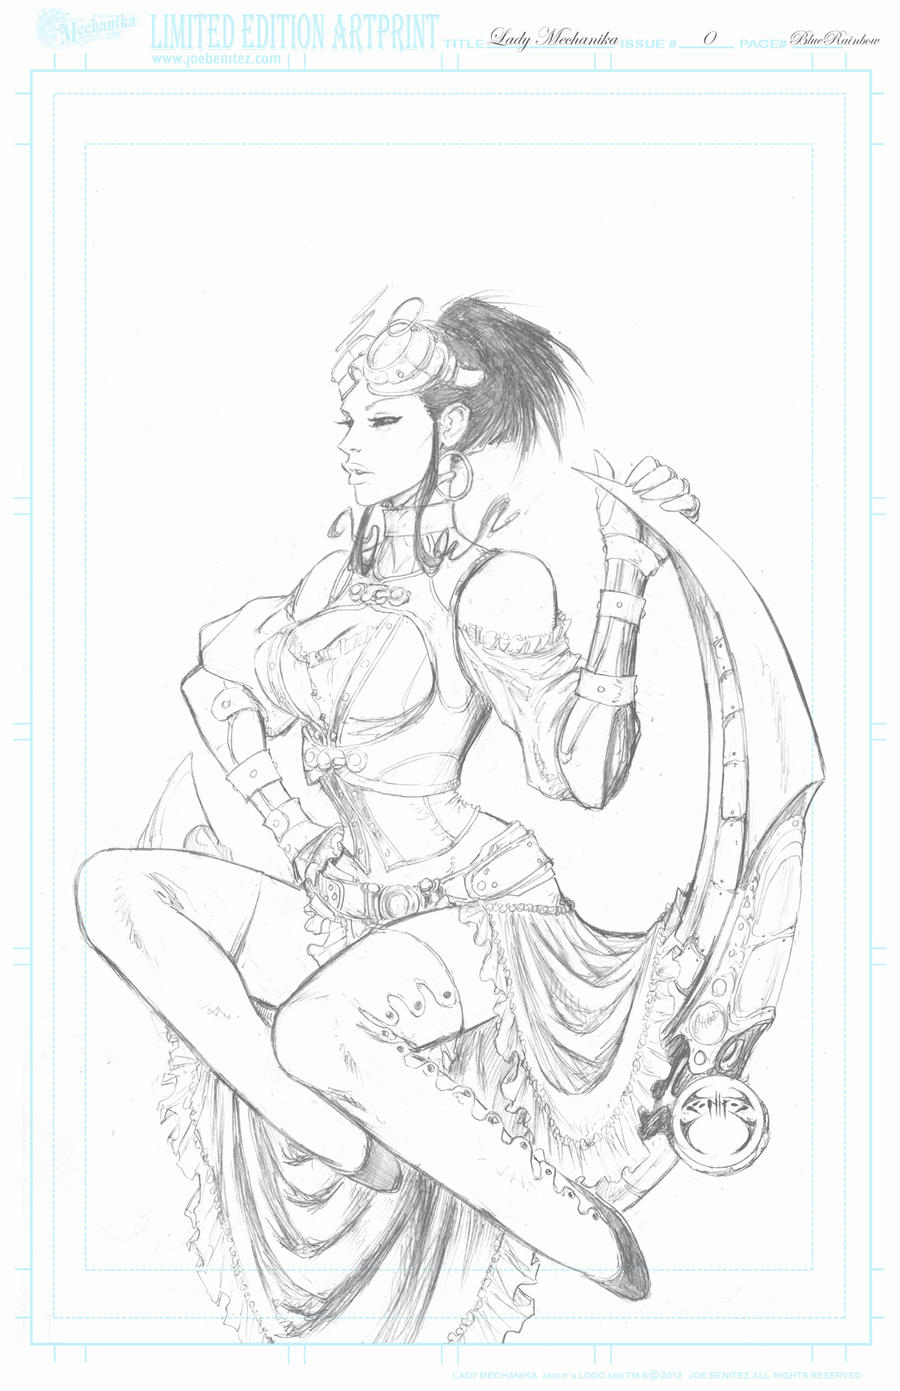 Lady M 0 BlueRainbow pencil Print by joebenitez